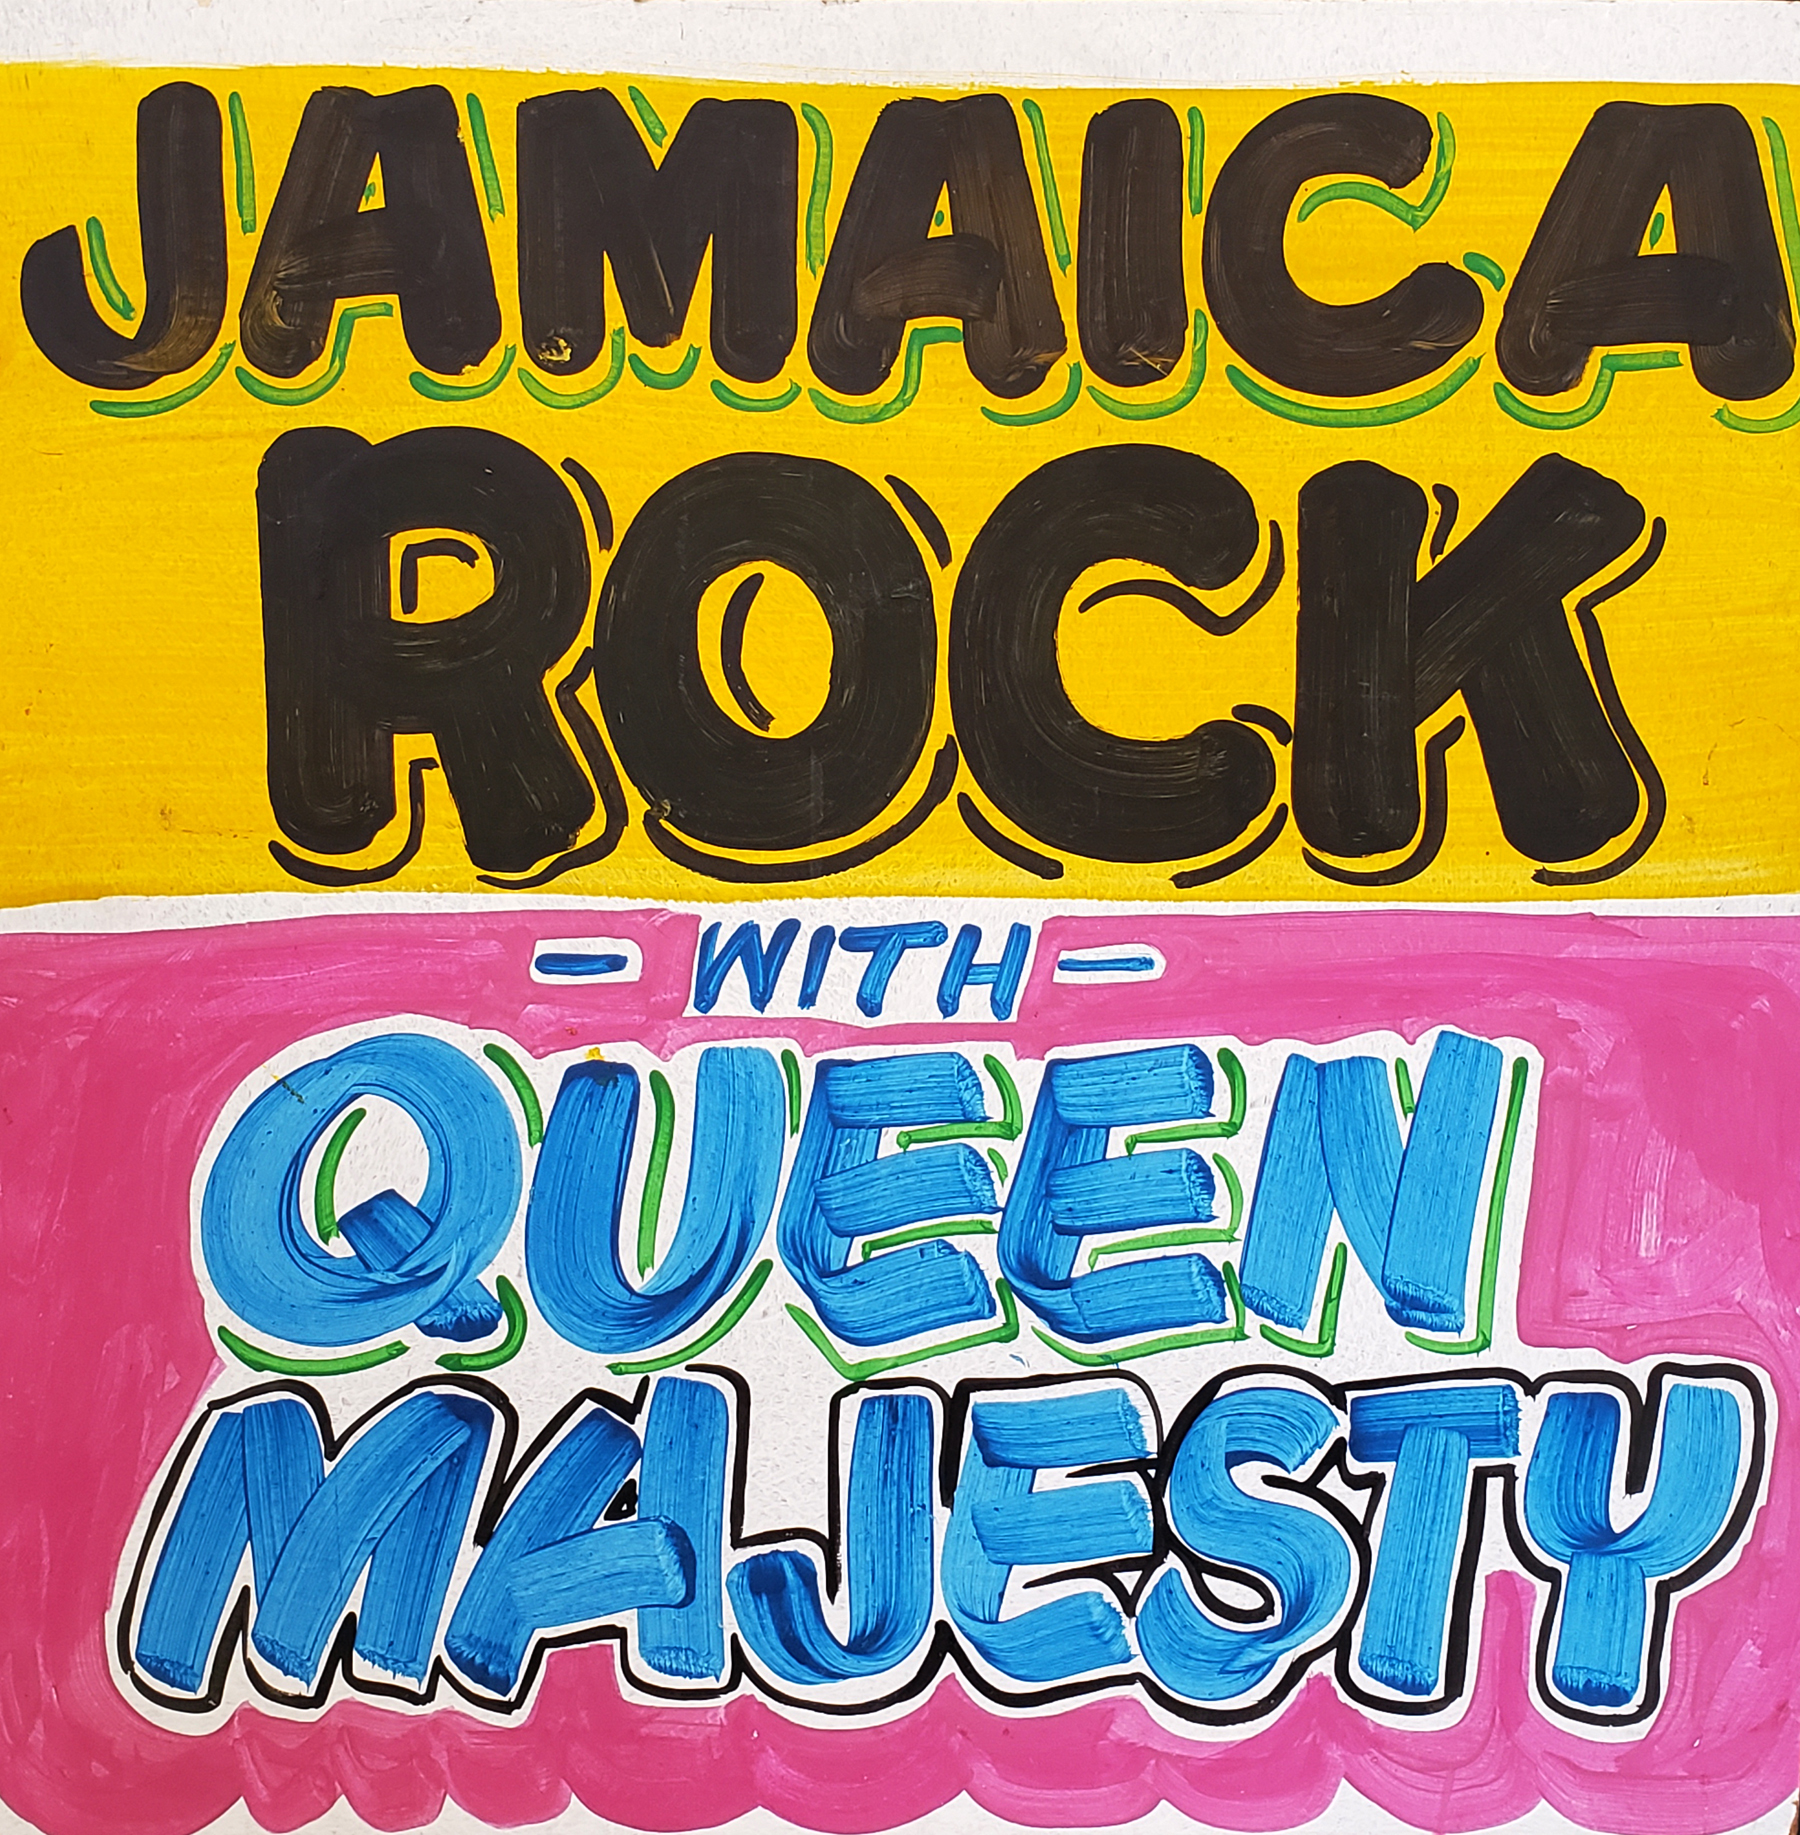 JAMAICAROCKnursesigns Queen Majesty Brings Jamaican Flavor to The General Stereo DJ Series